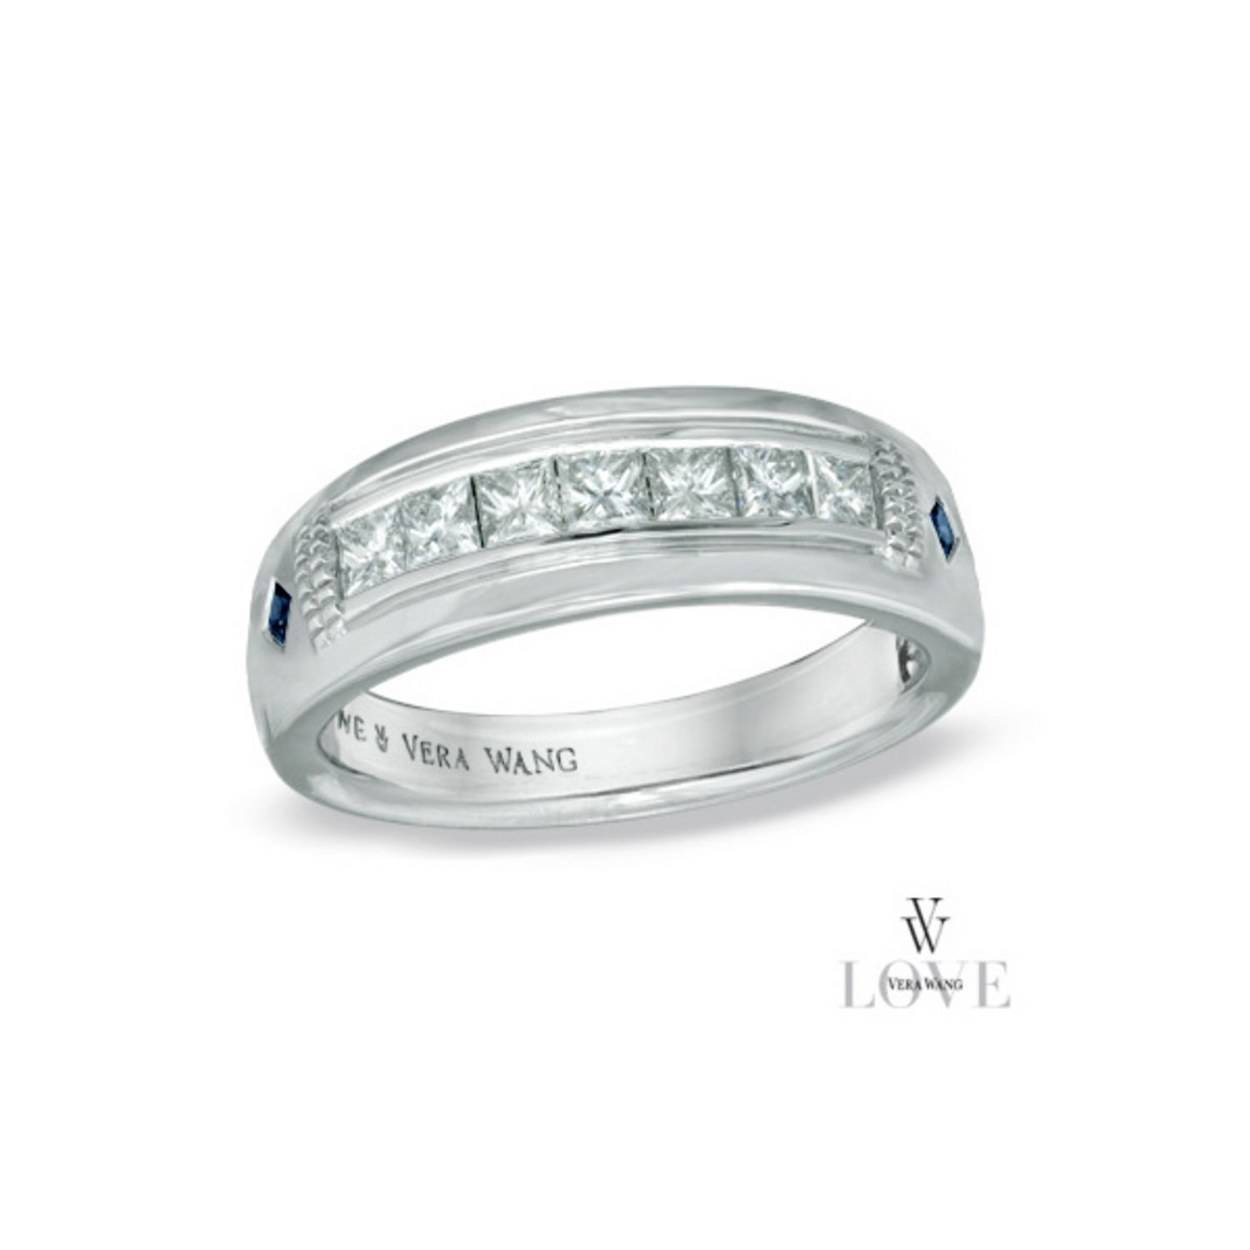 15 Men's Wedding Bands Your Groom Won't Want To Take Off | Glamour With Regard To Wedding Bands And Engagement Rings (View 15 of 15)